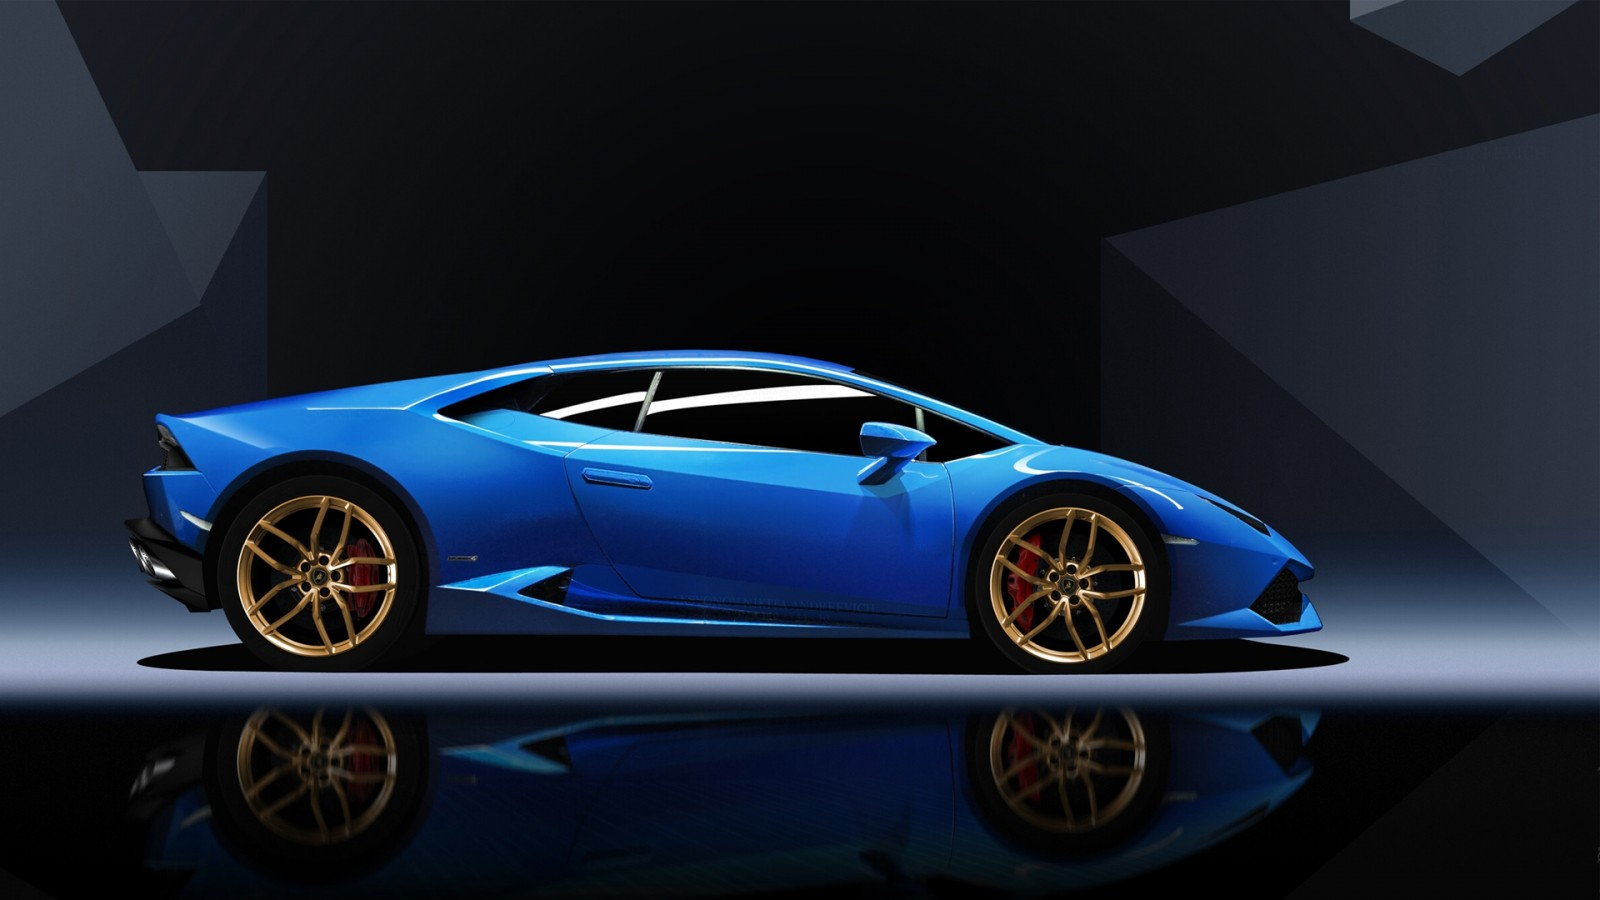 blue lamborghini huracan wallpaper hd car wallpapers. Black Bedroom Furniture Sets. Home Design Ideas